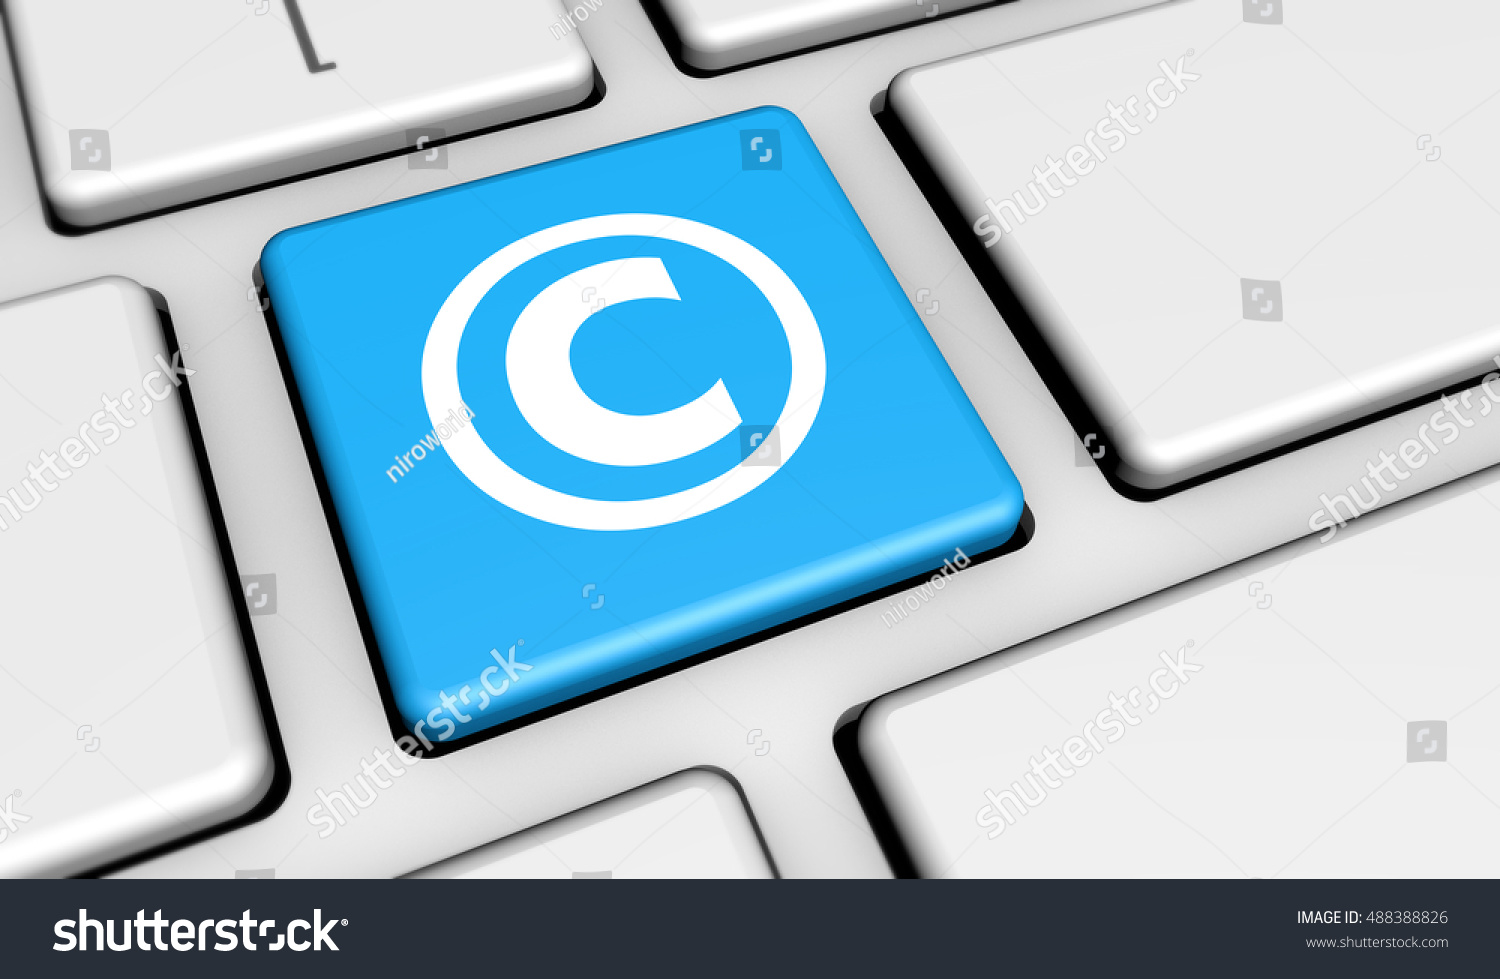 Digital copyrighting laws conceptual 3d illustration stock digital copyrighting laws conceptual 3d illustration with copyright symbol and icon on a computer key biocorpaavc Gallery